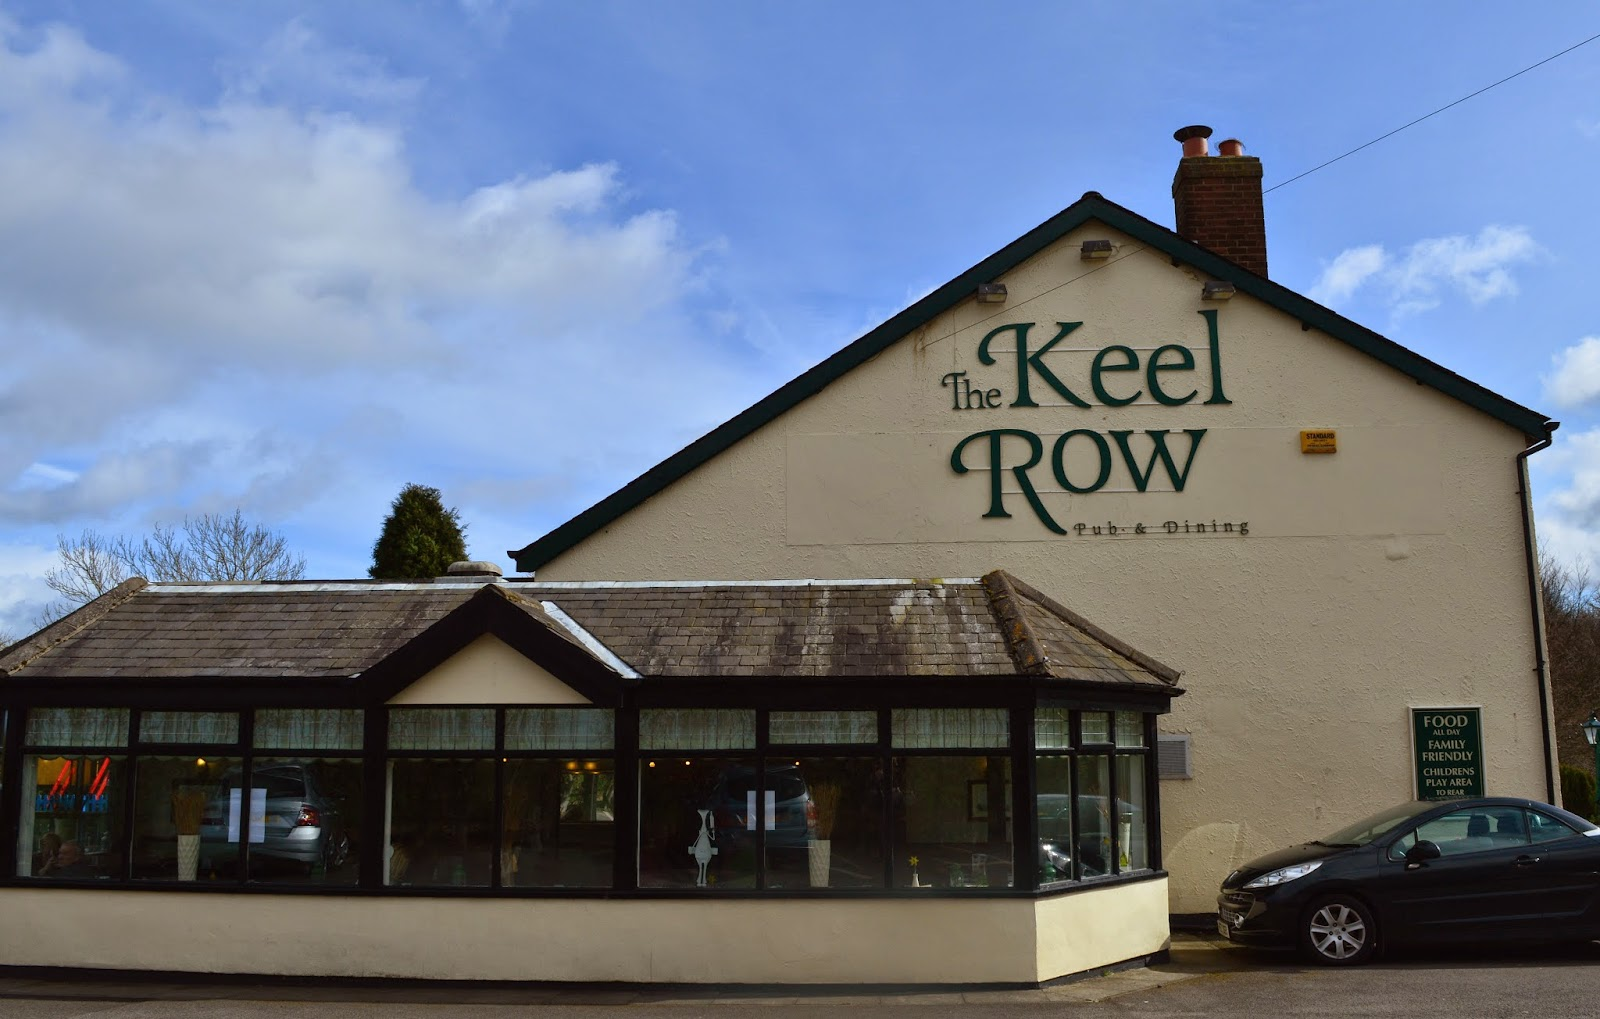 Afternoon tea at The Keel Row